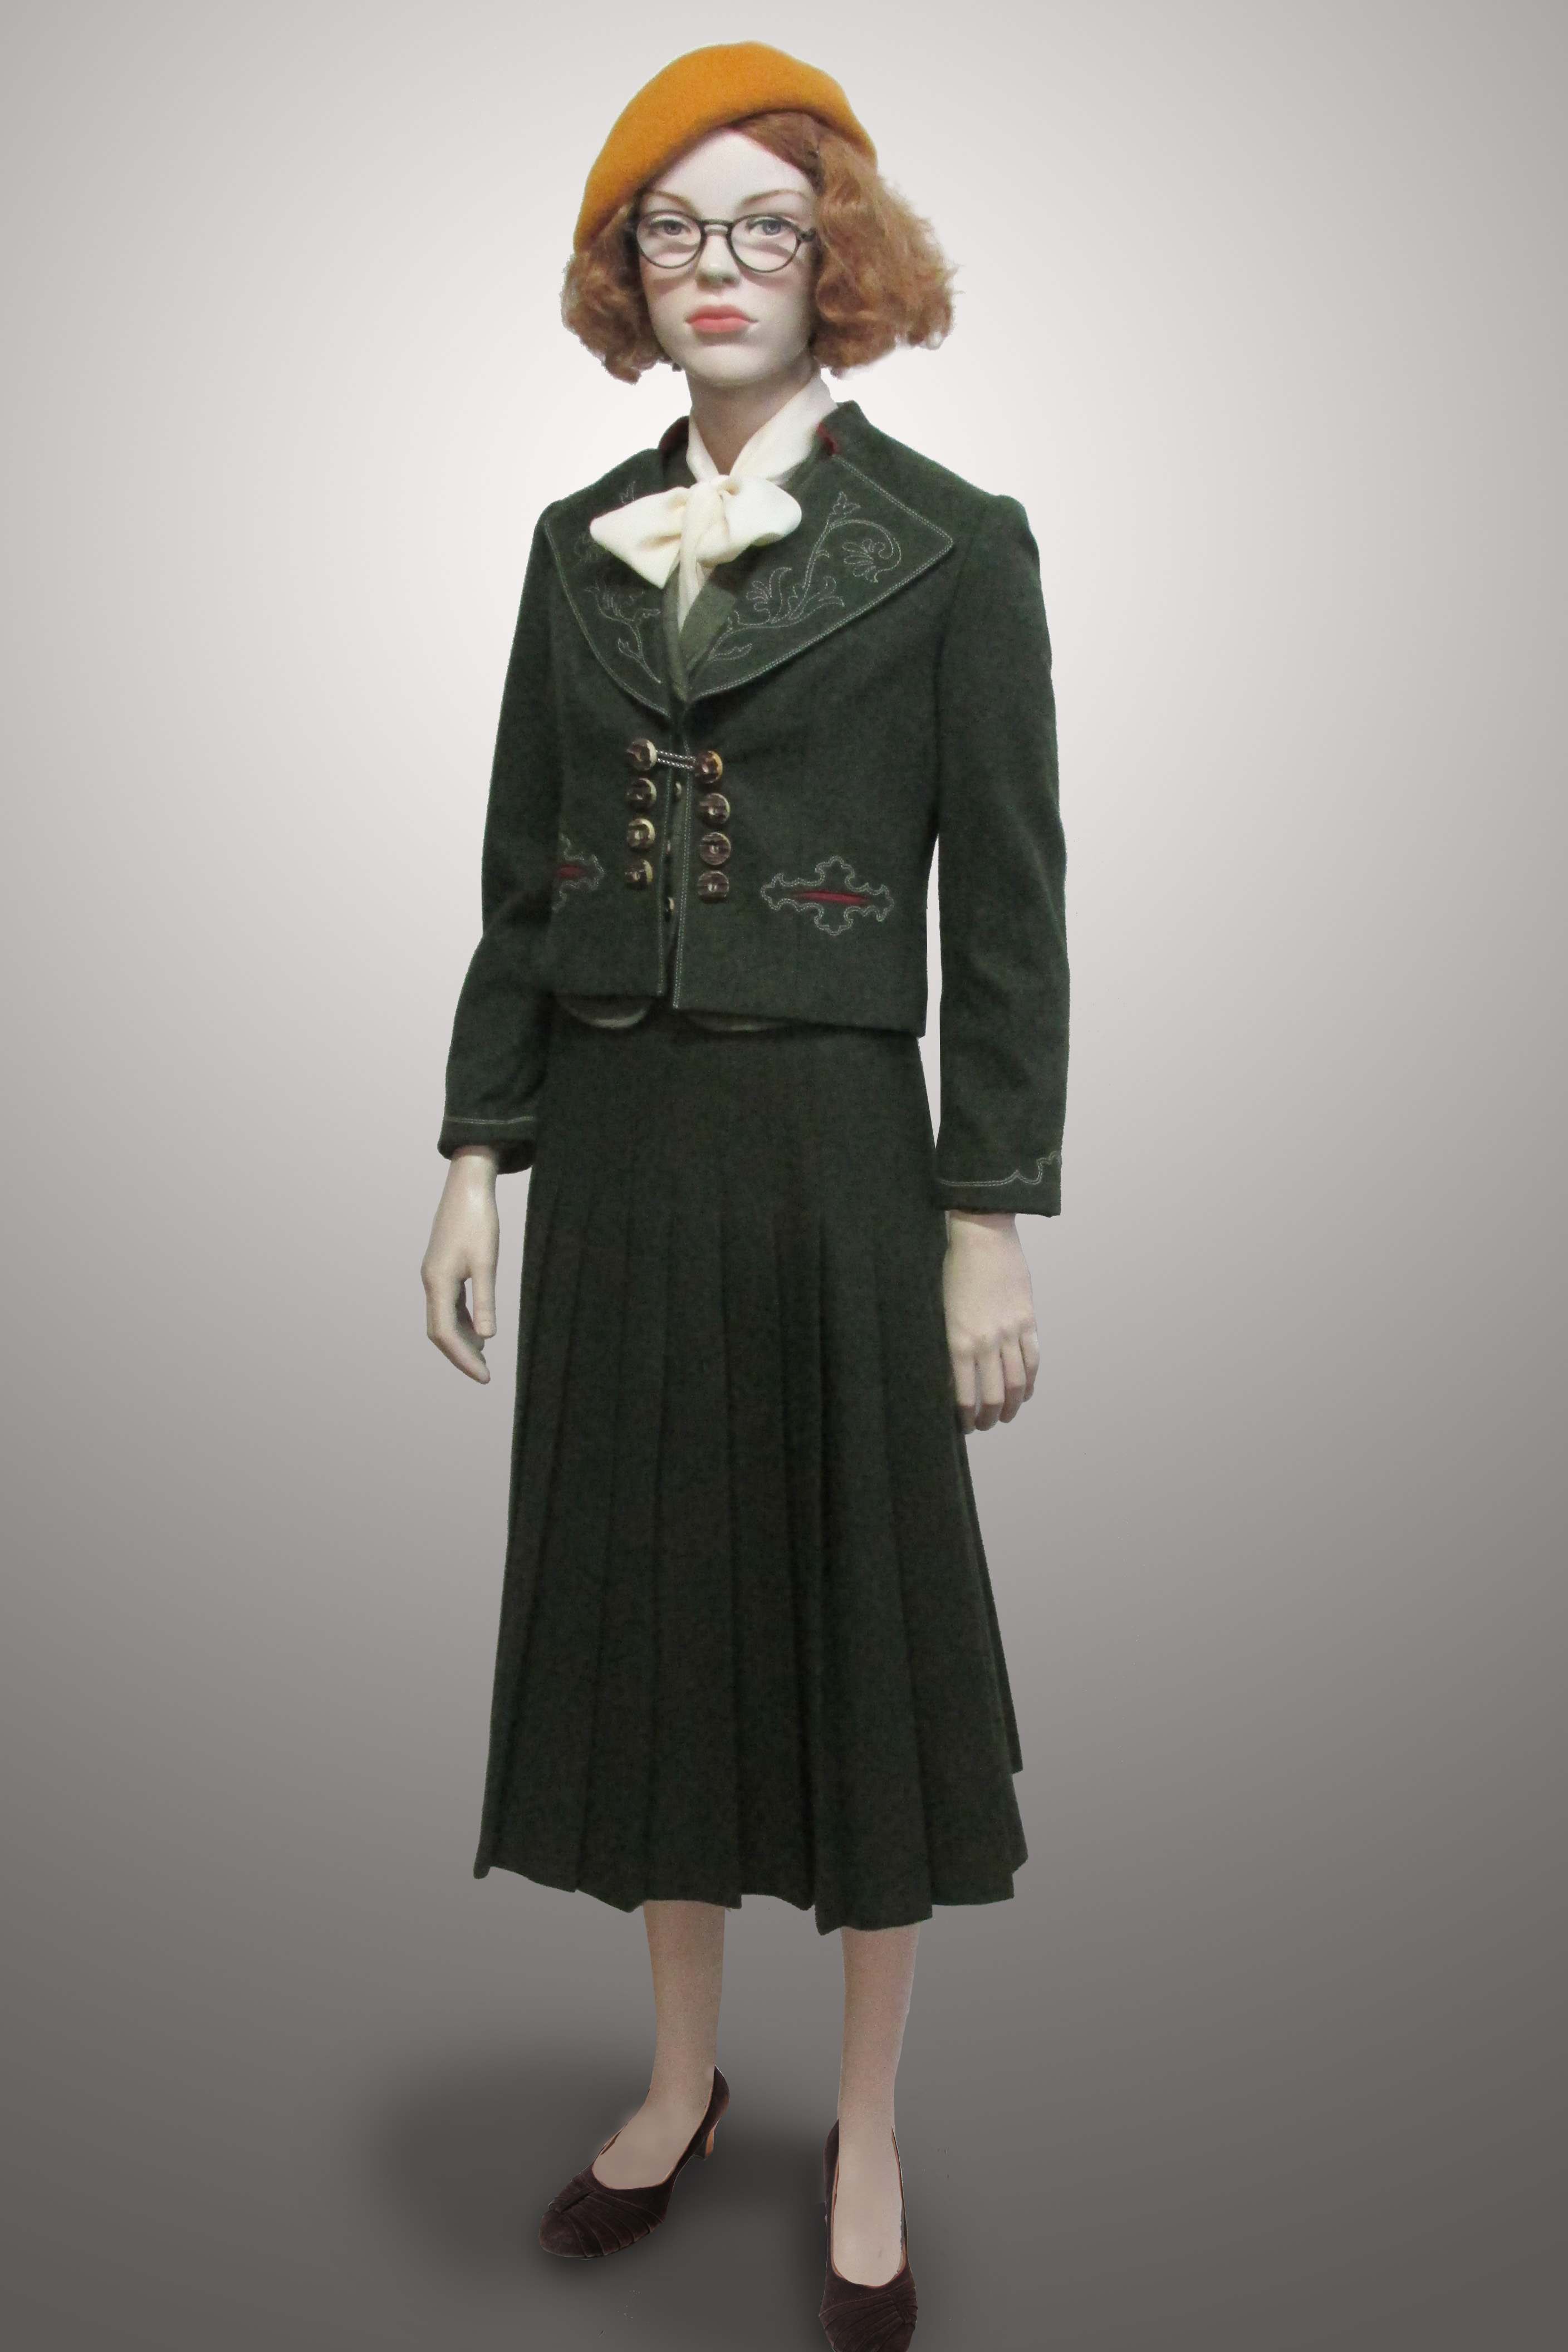 Green Pleated Skirt with Green Austrian Jacket